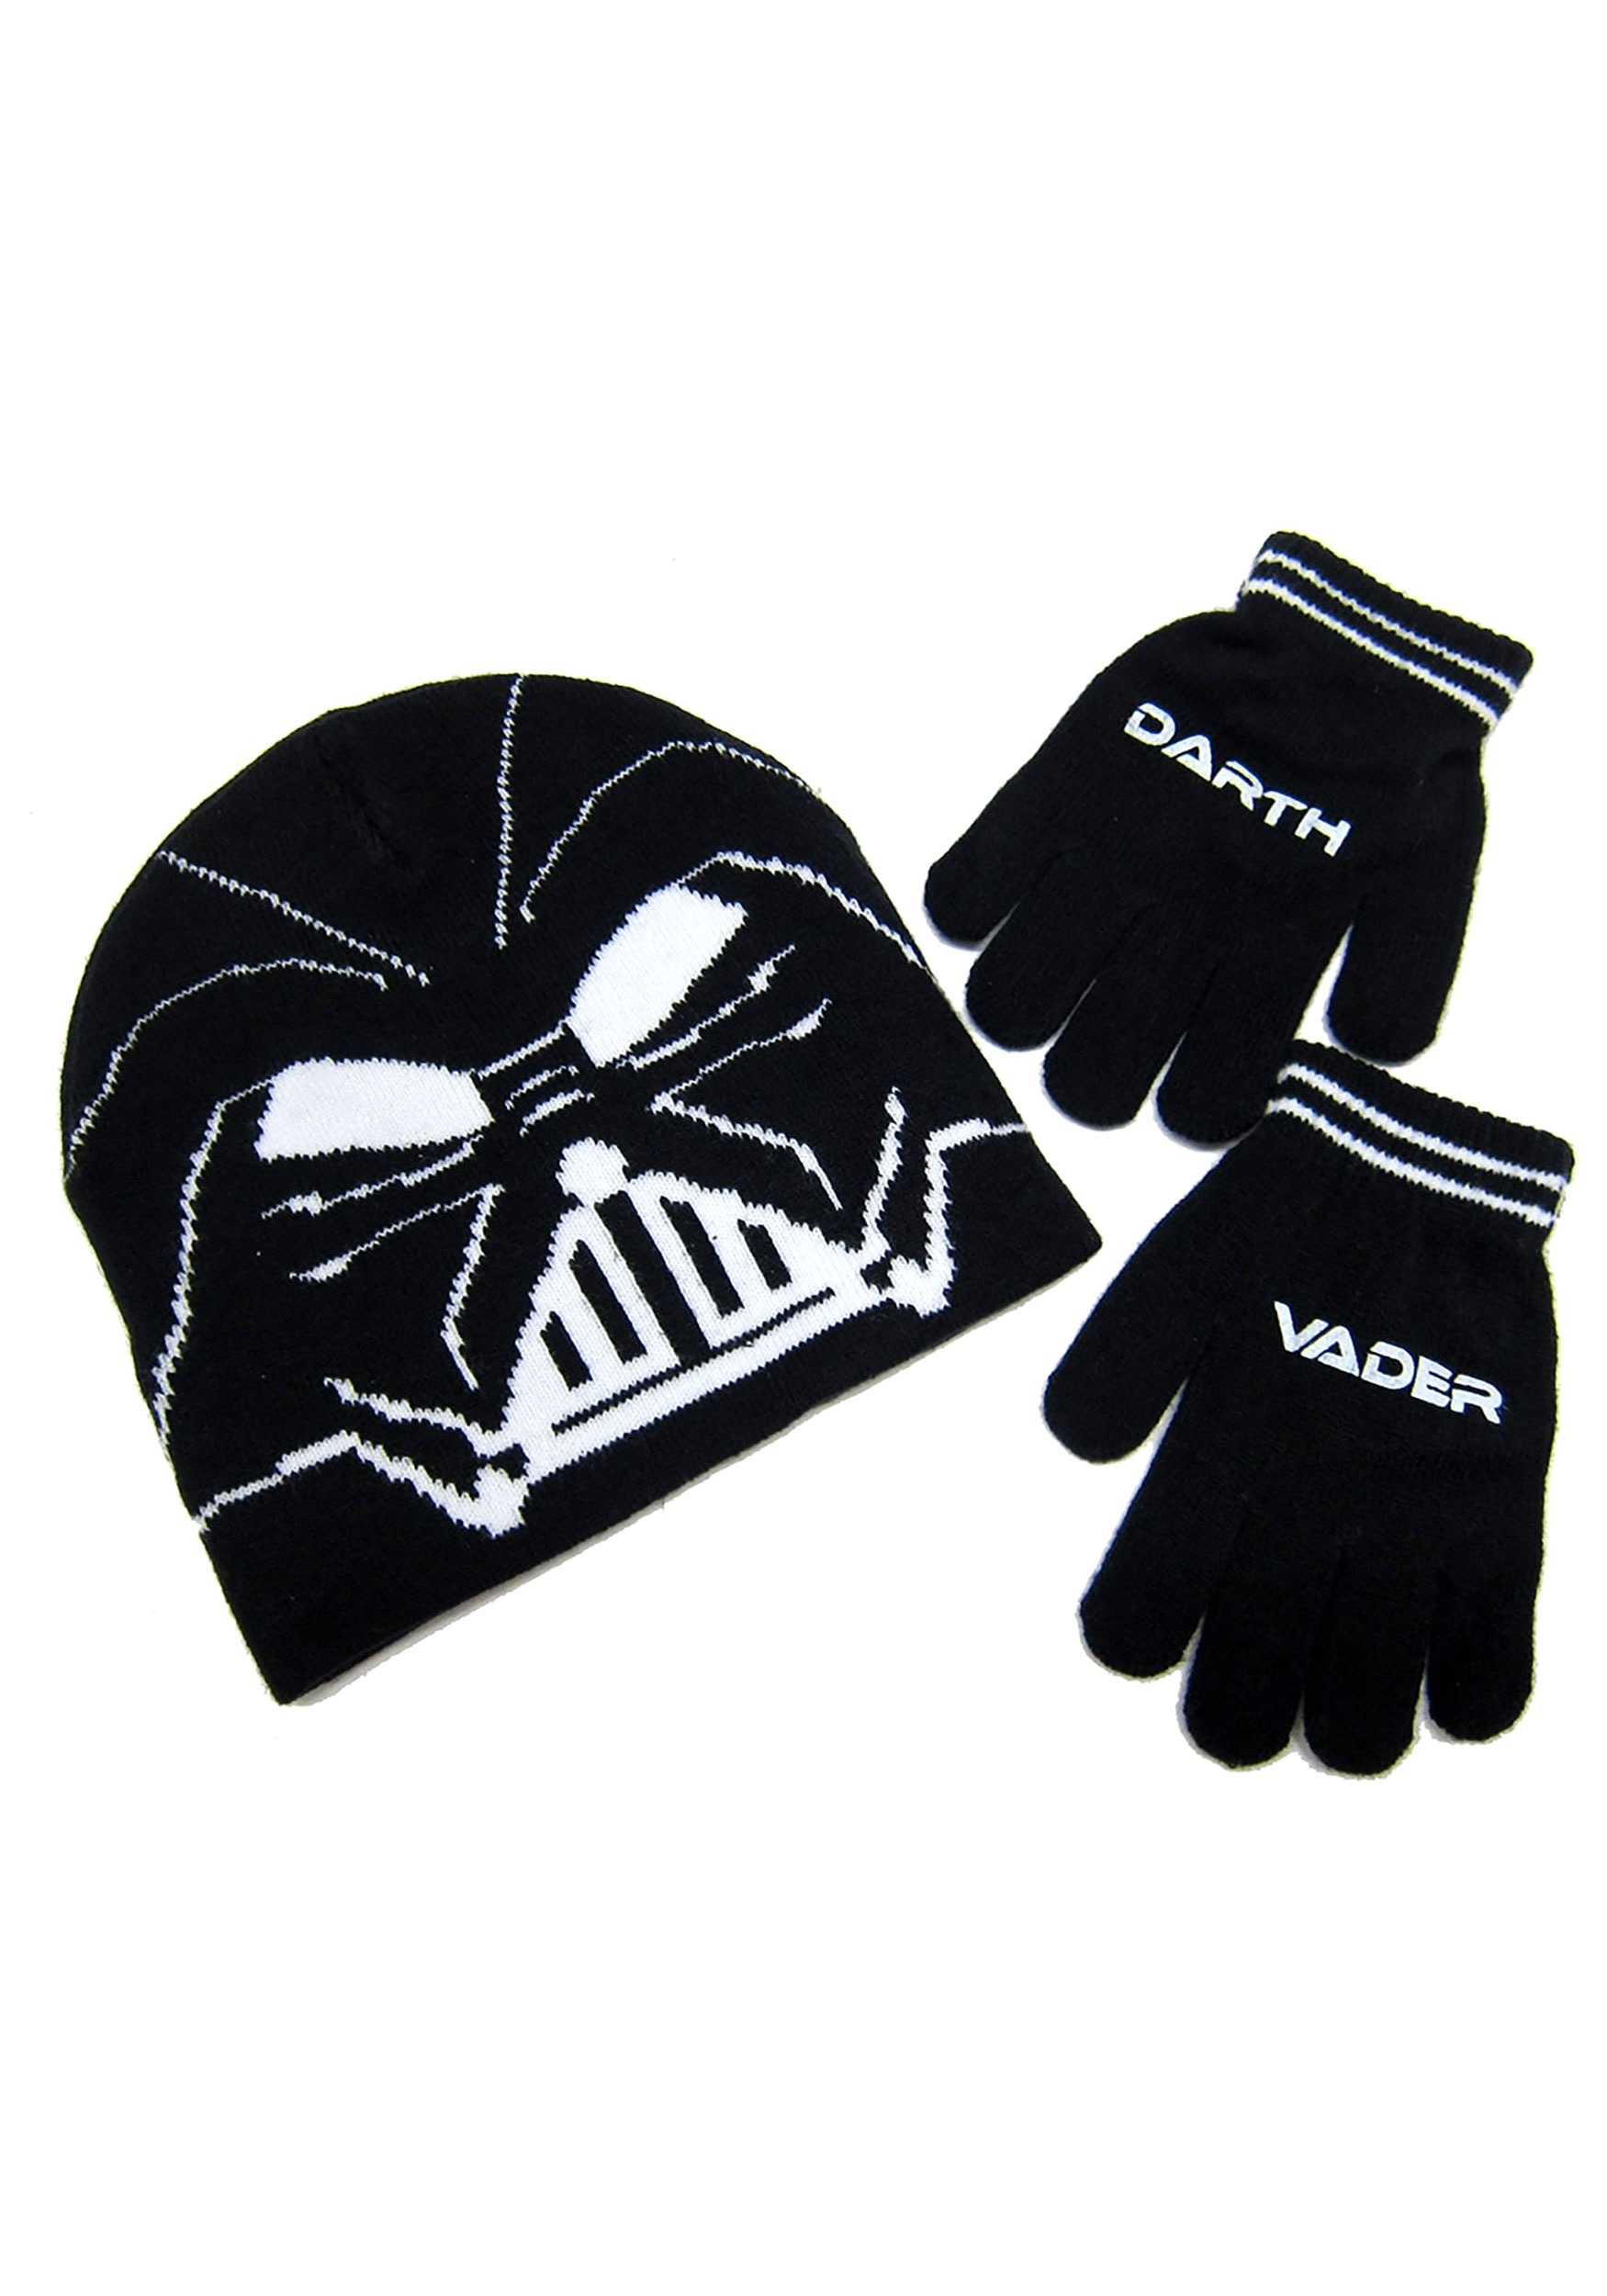 Darth Vader Kids Knit Beanie & Gloves Set from Star Wars